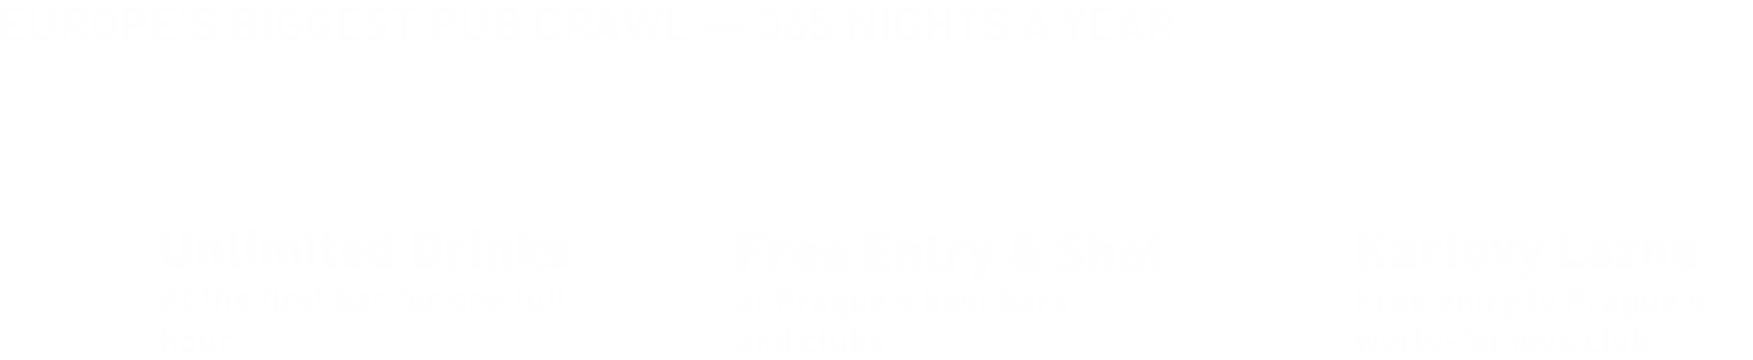 Europe's biggest Pub Crawl — Prague's #1 Nightlife Experience